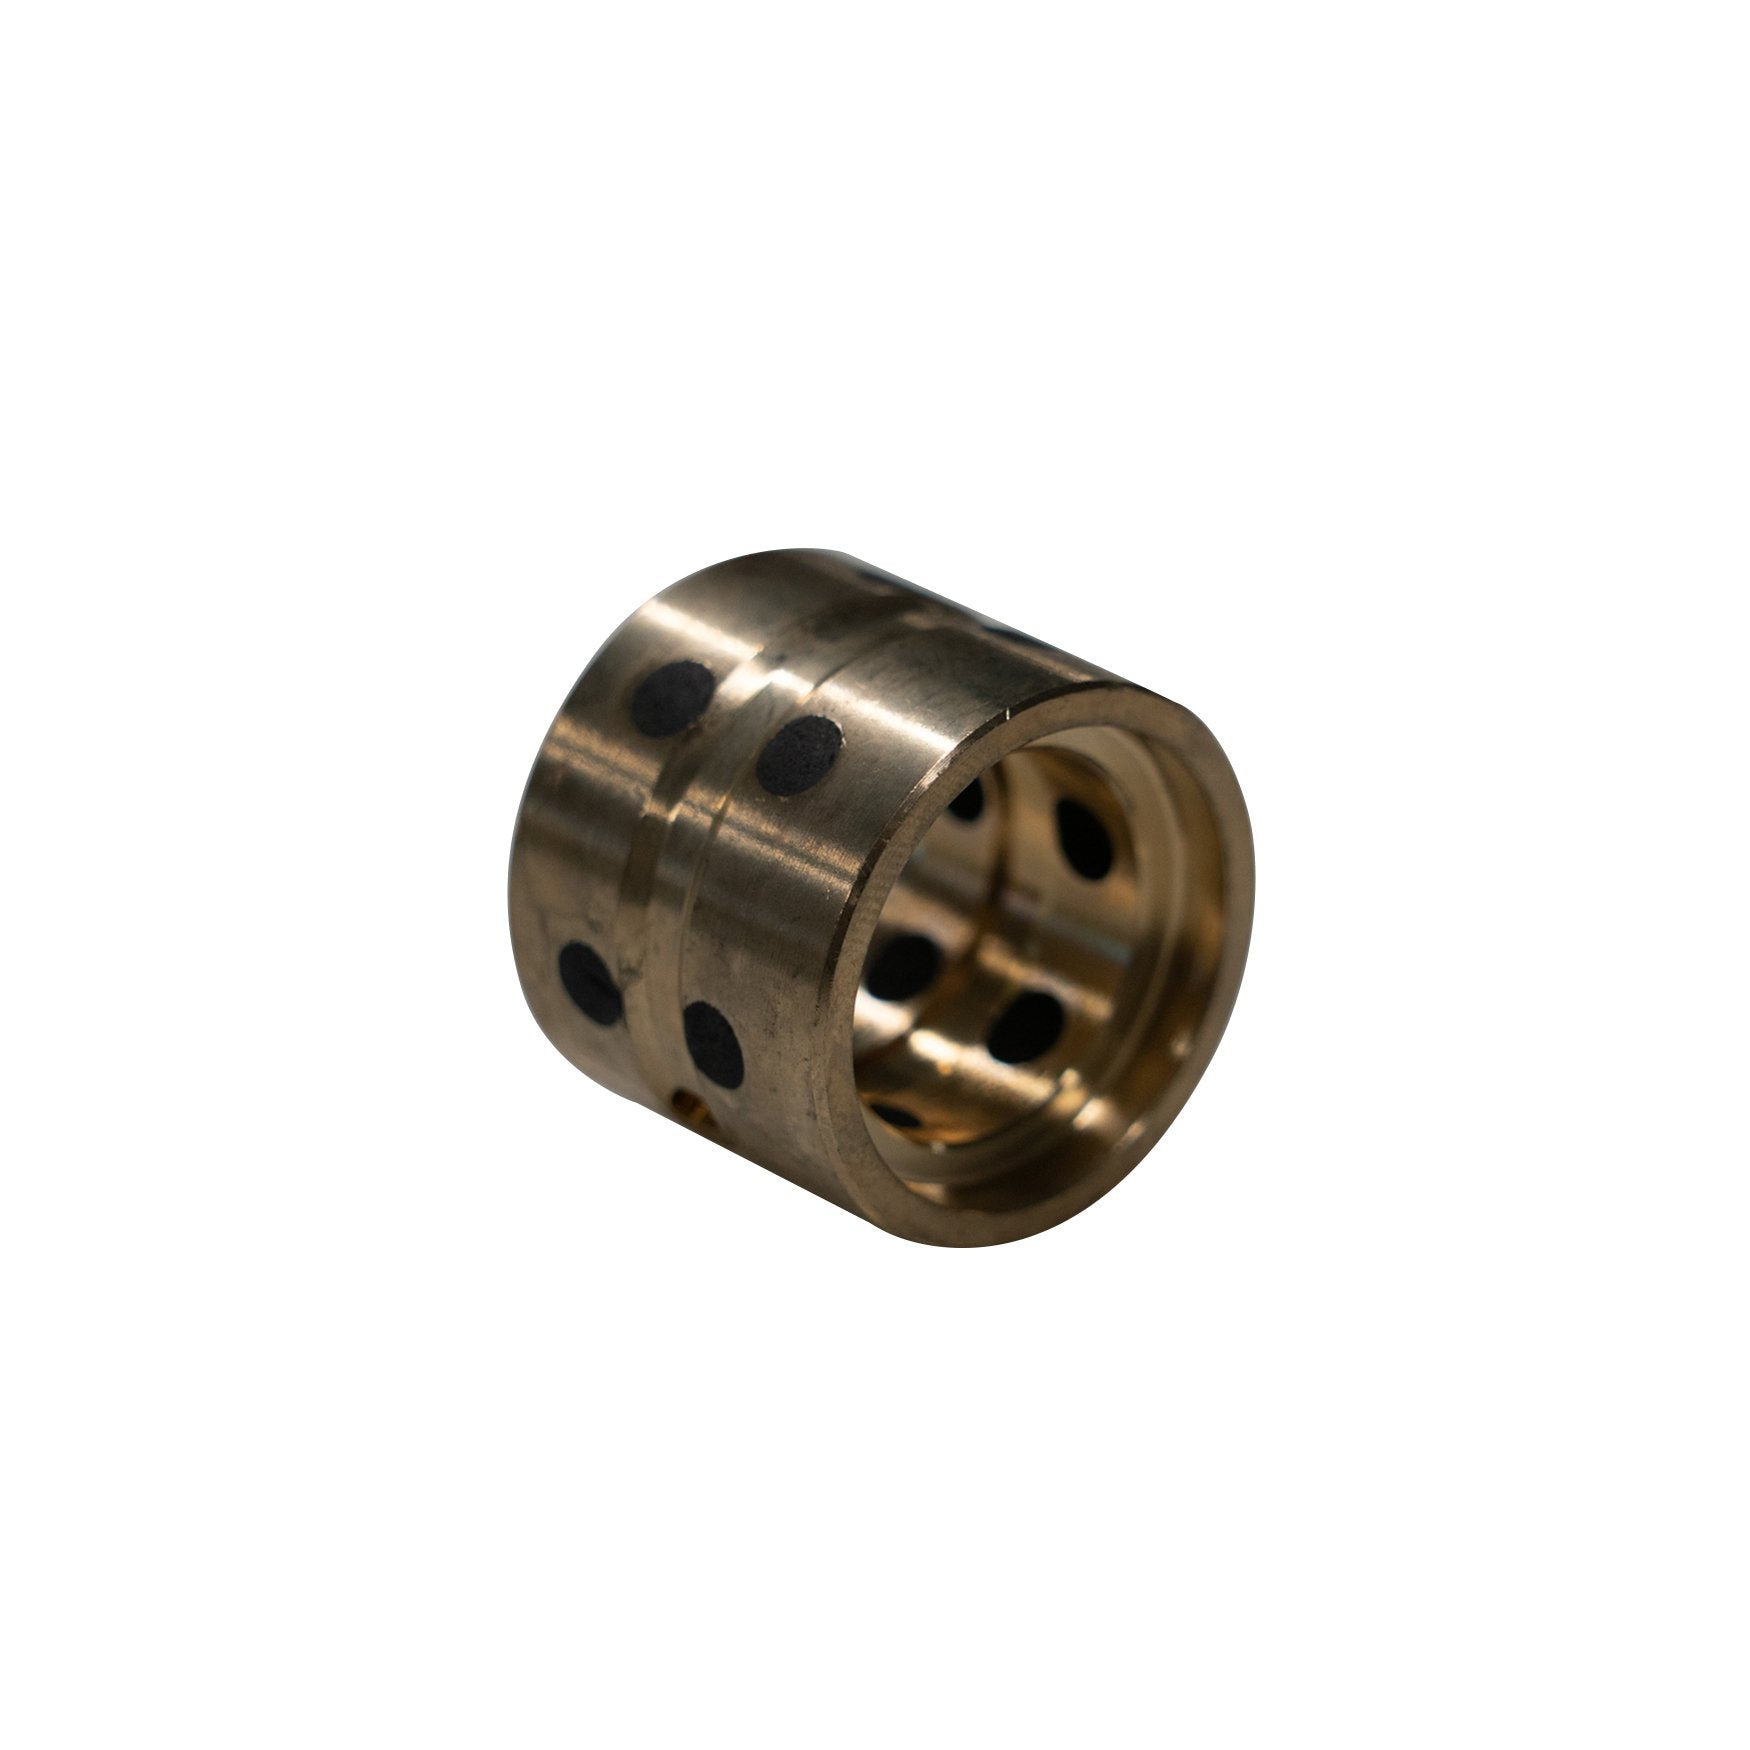 Bushing Pin SKU: 49534-FC300